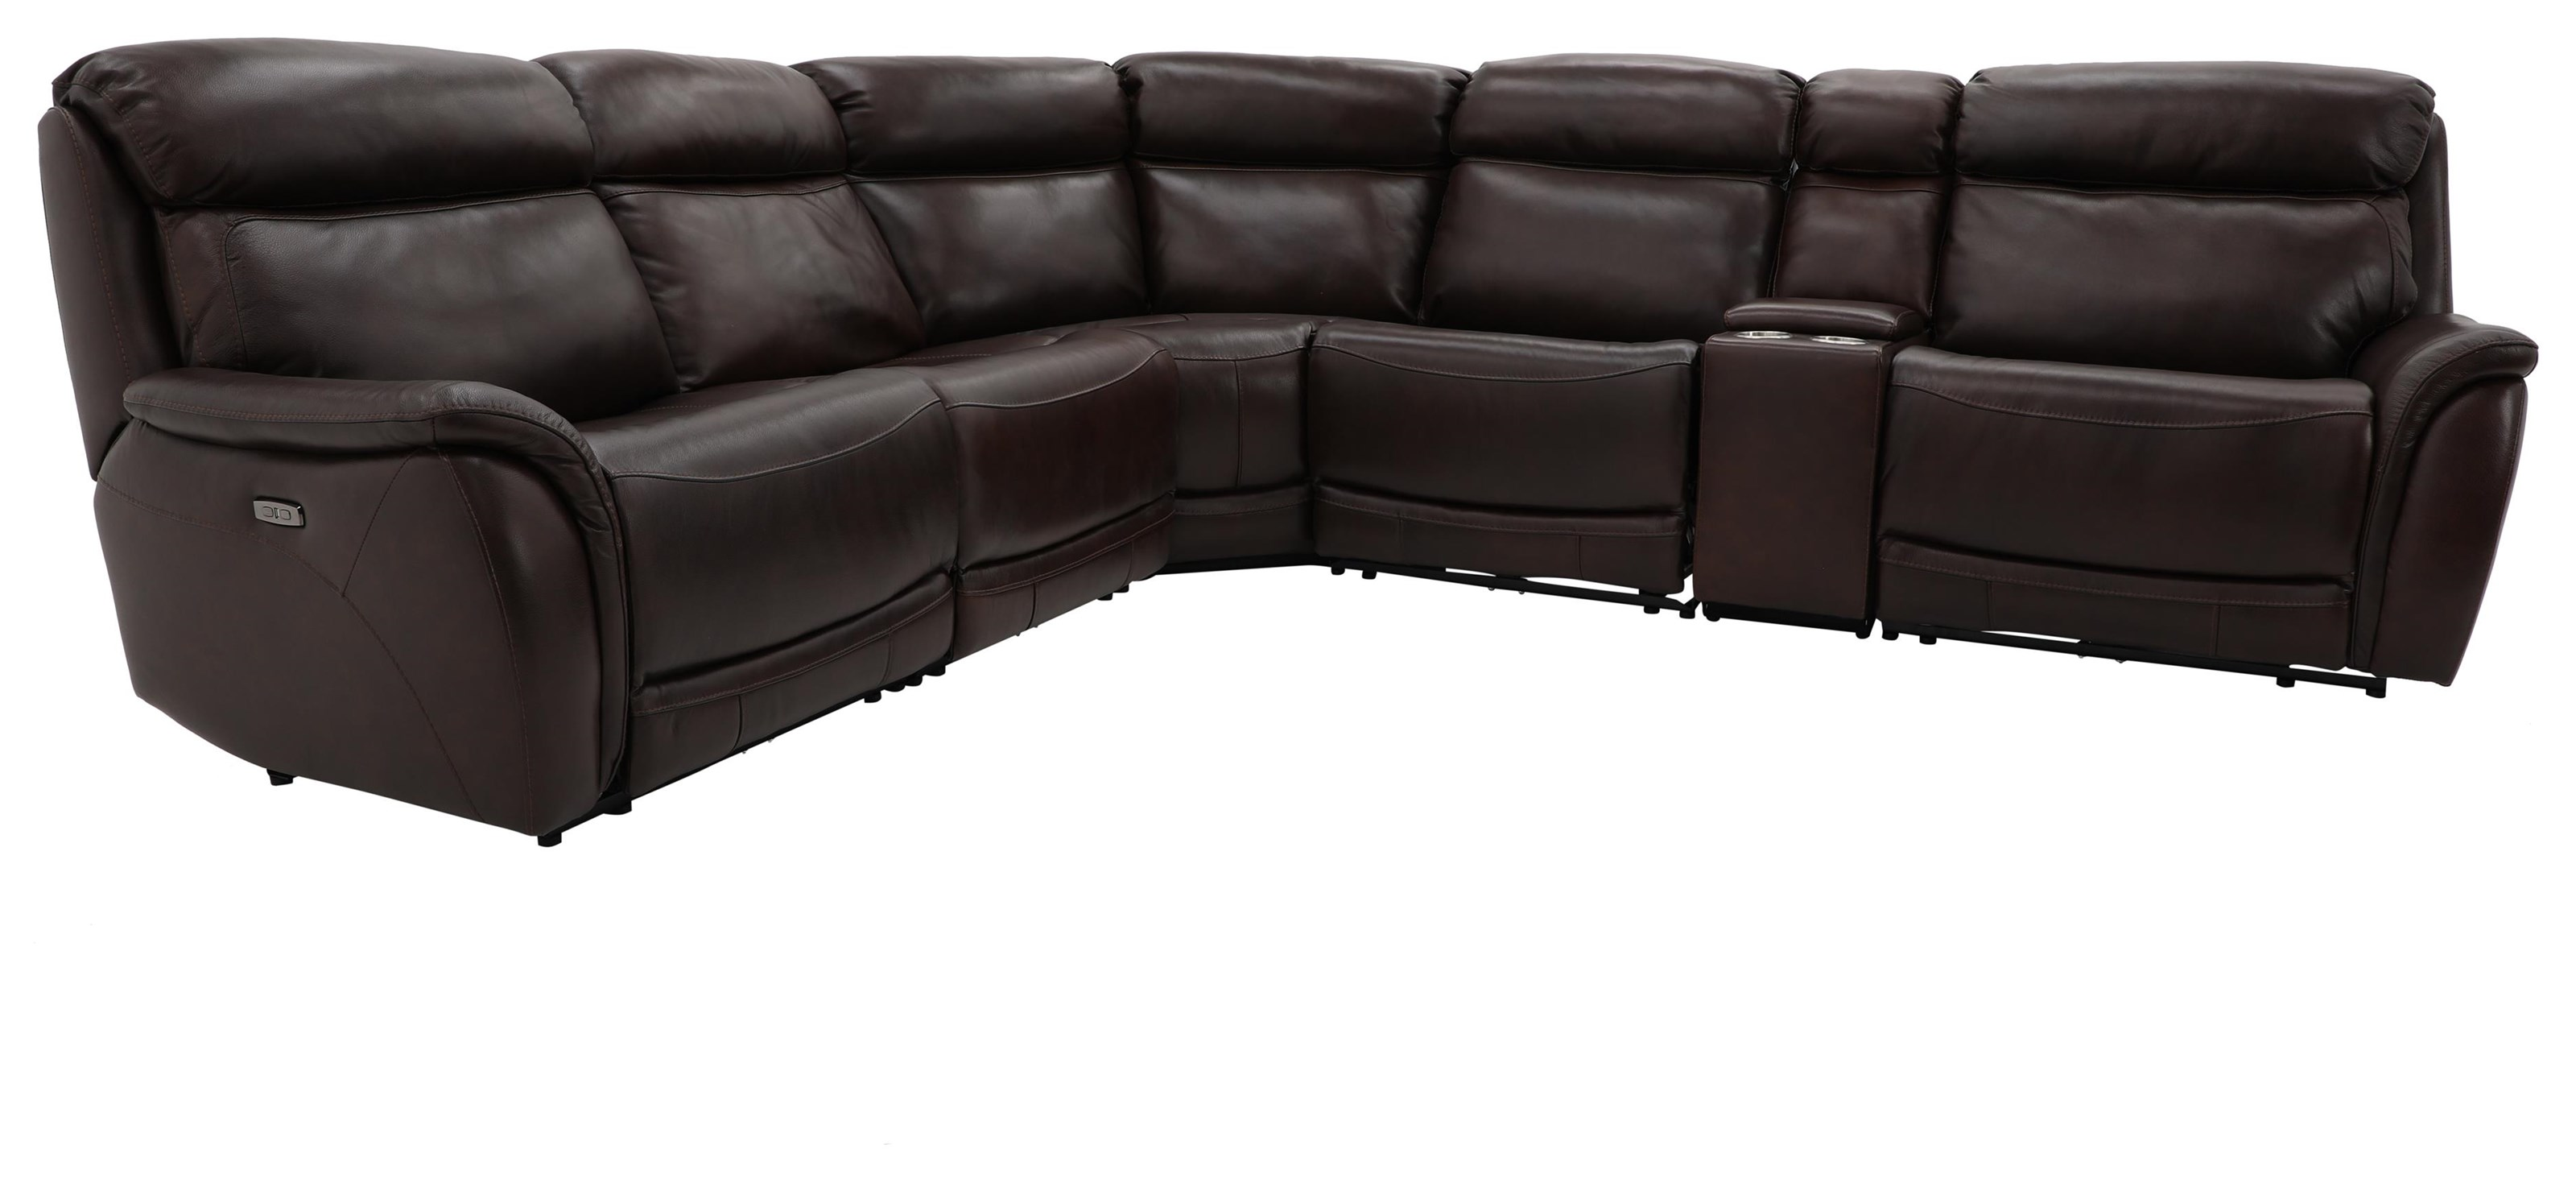 MODULAR PWR RECLINING LEATHER SECTIONAL